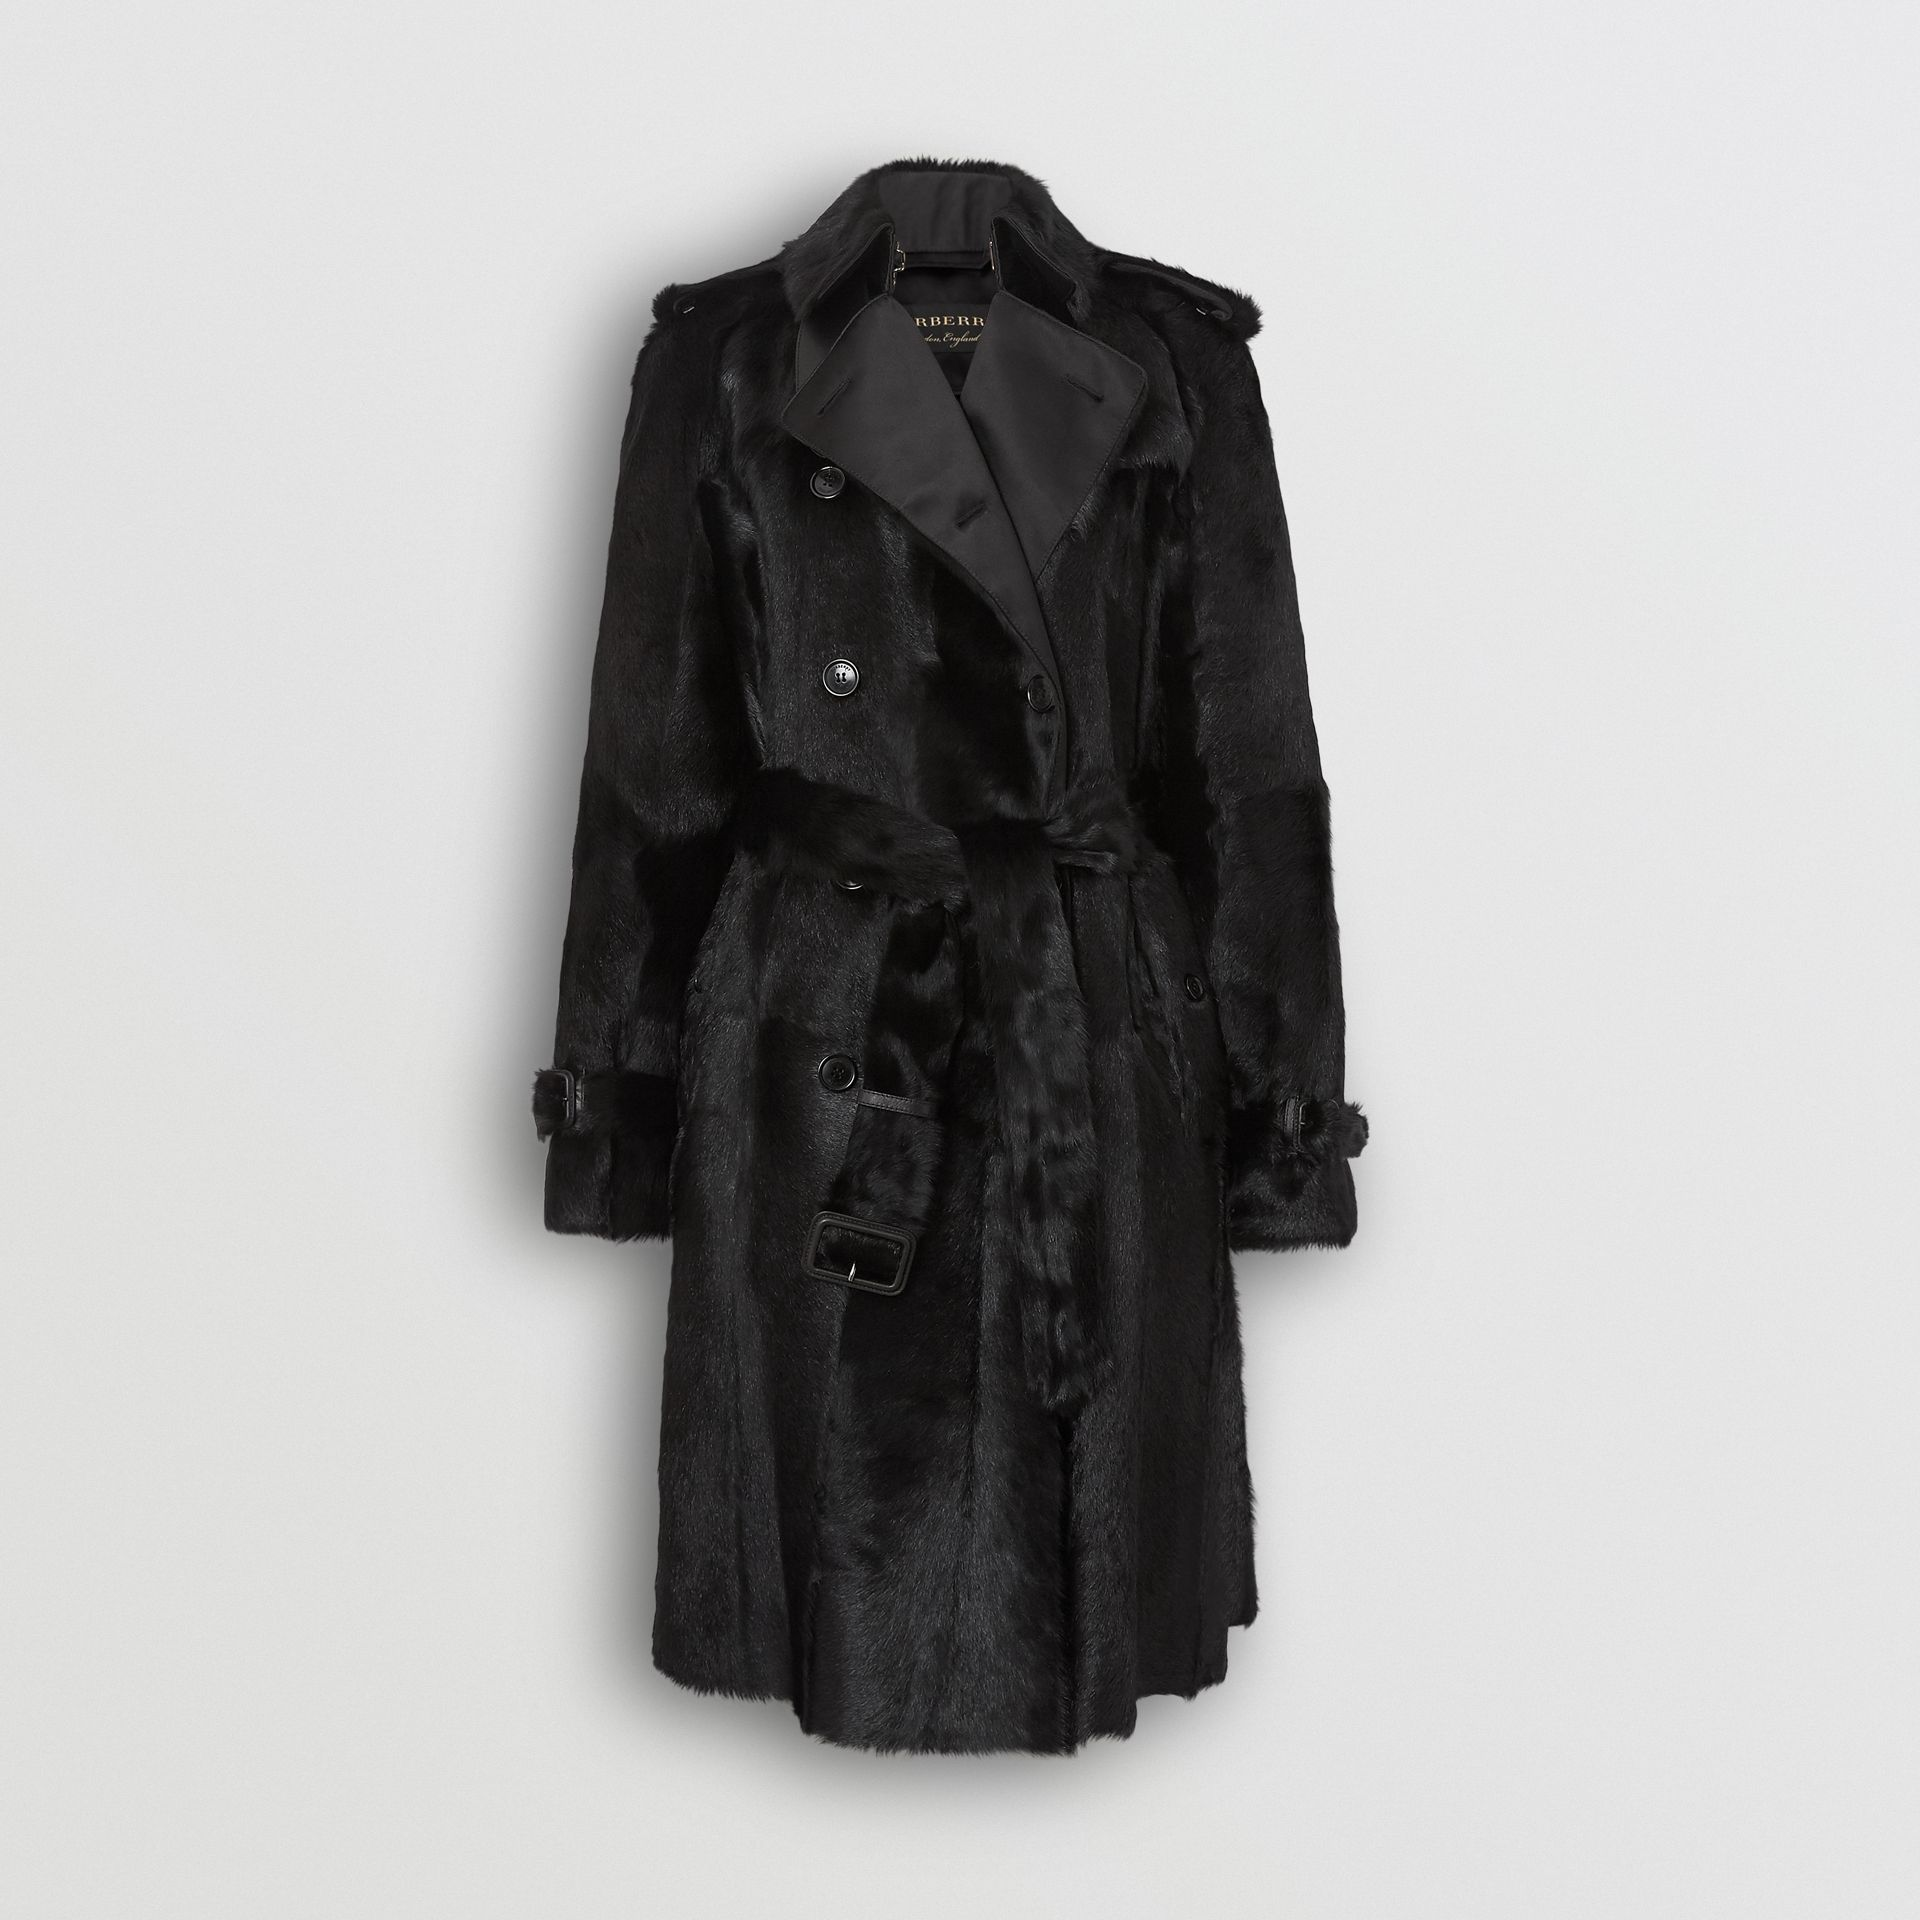 Goat Trench Coat in Black - Women | Burberry - gallery image 3